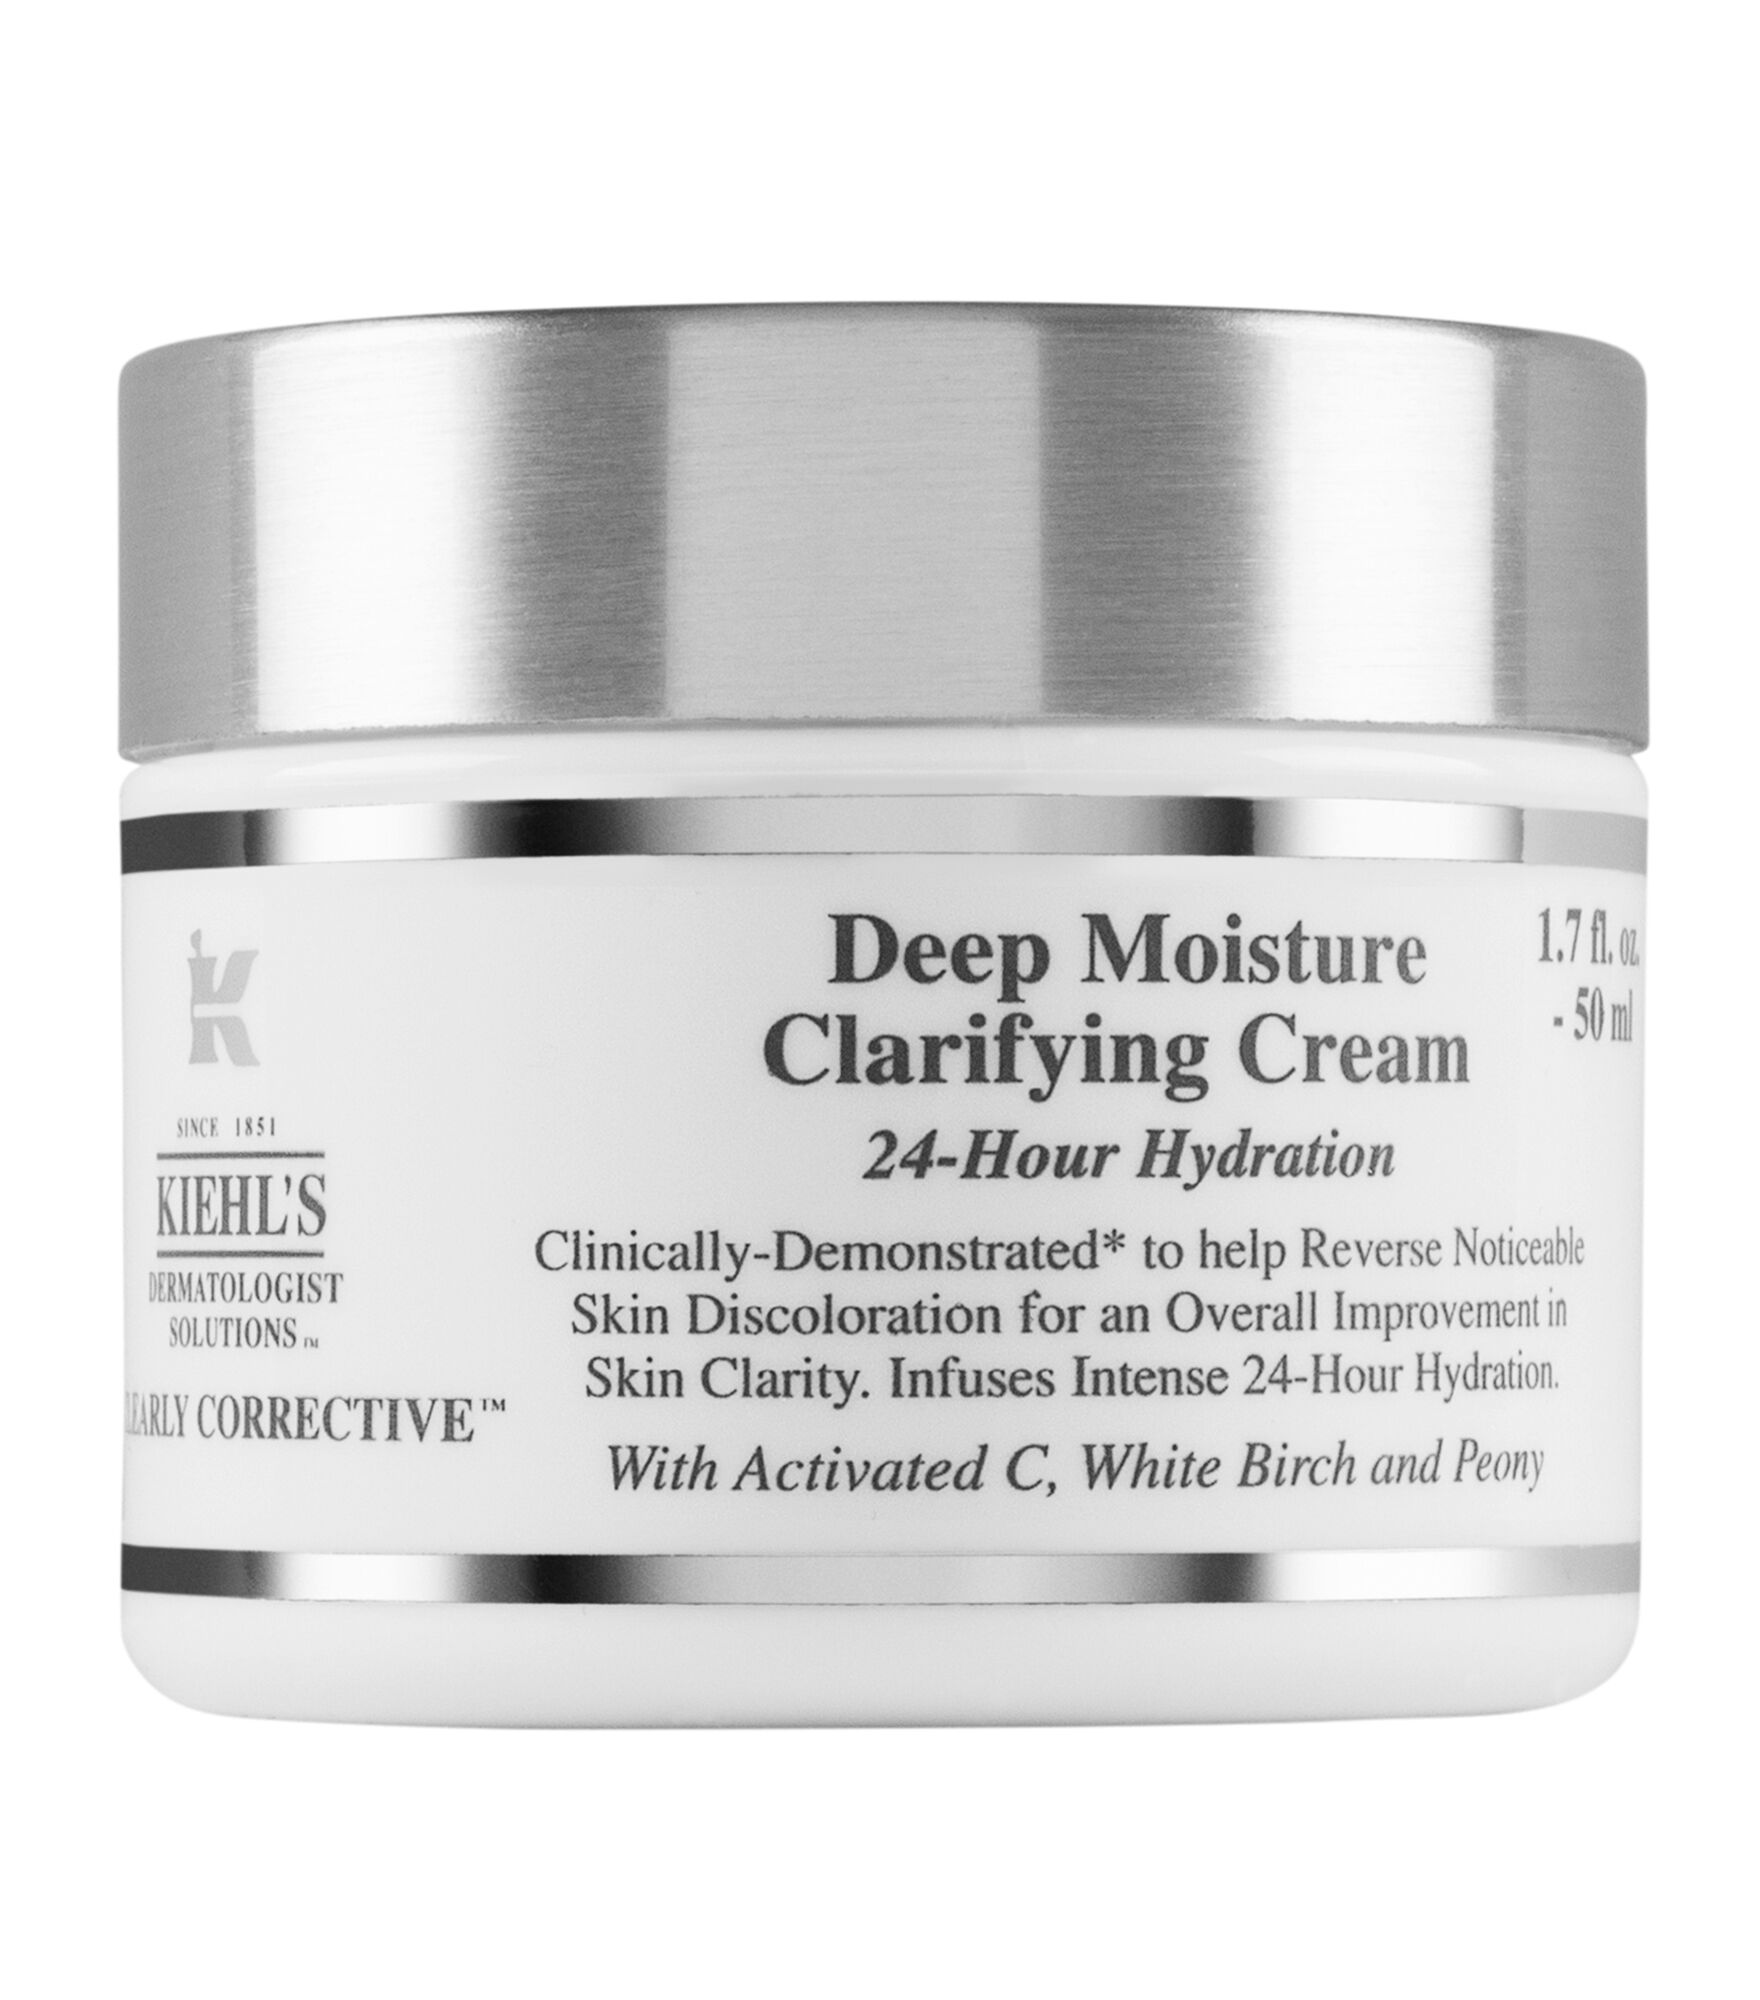 Clearly Corrective Moisturizing Cream